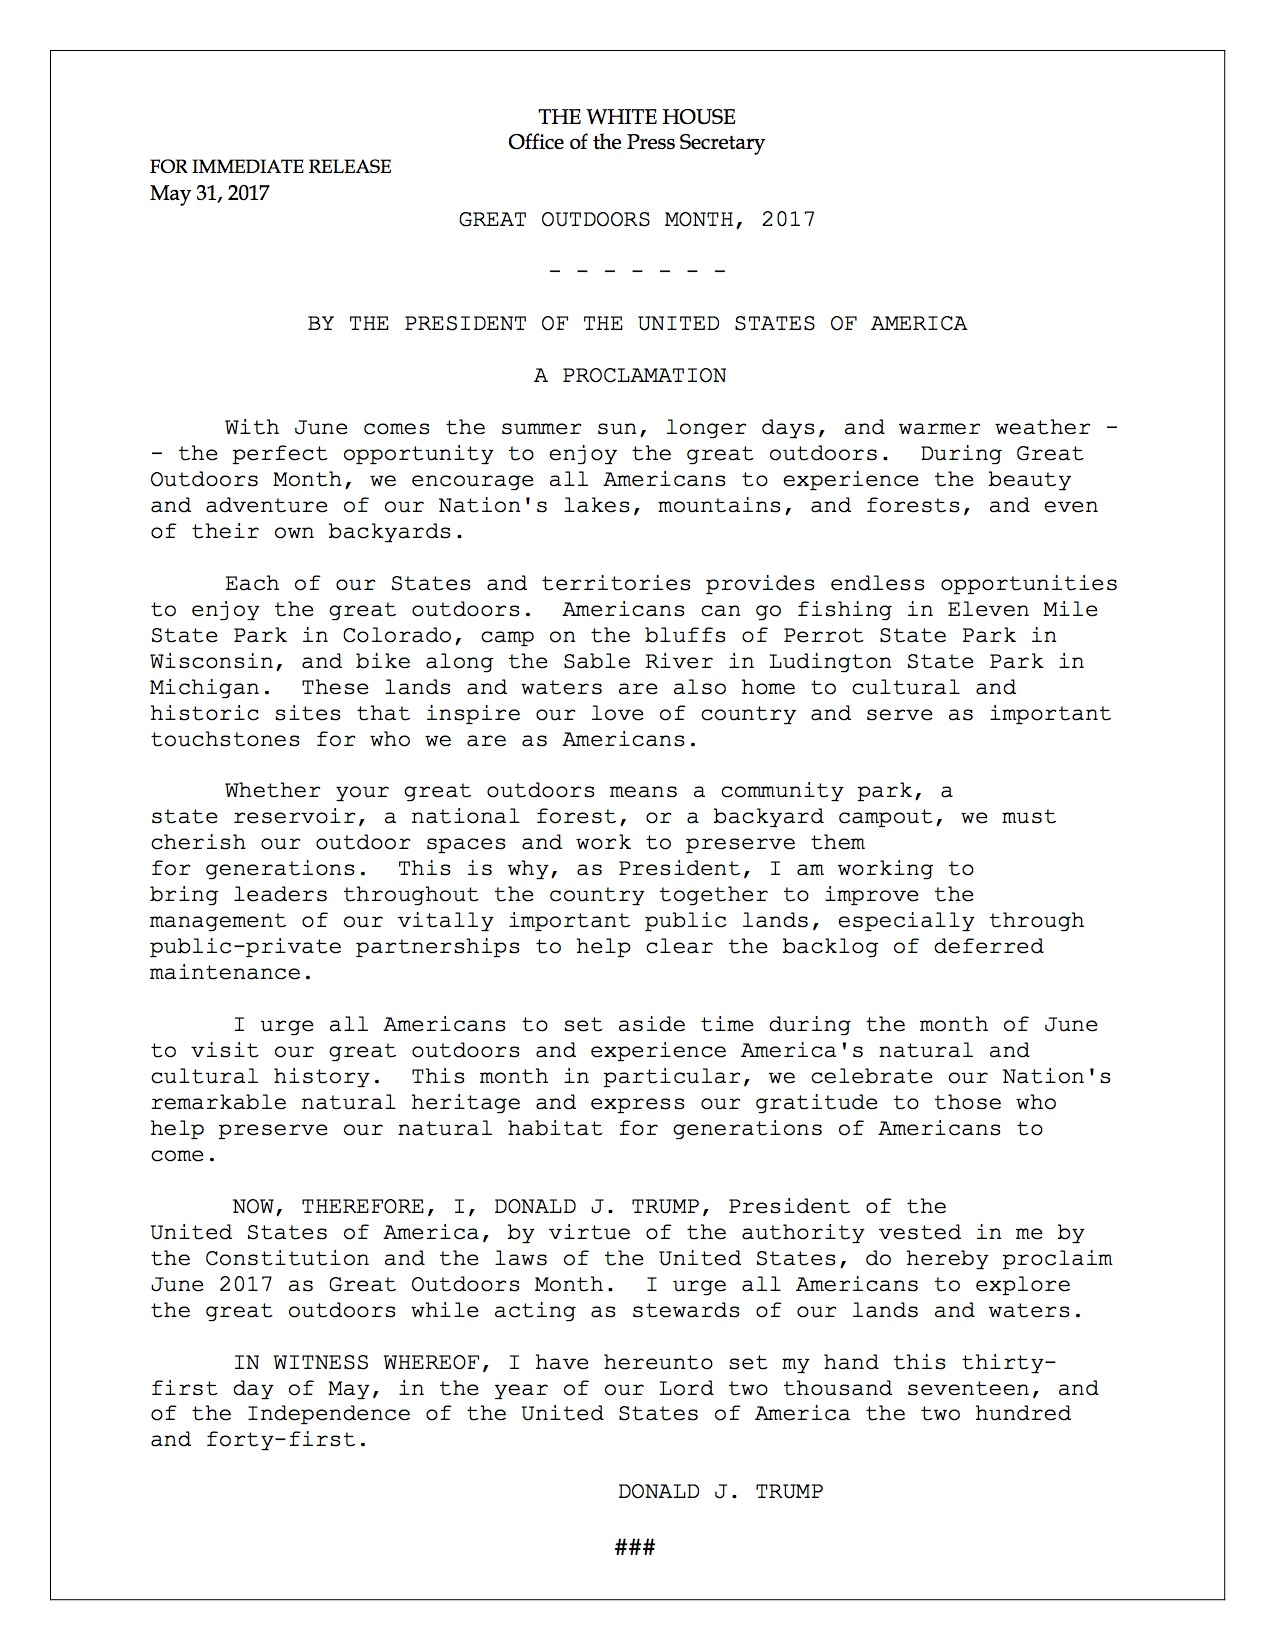 Great Outdoors Month Presidential Proclamation